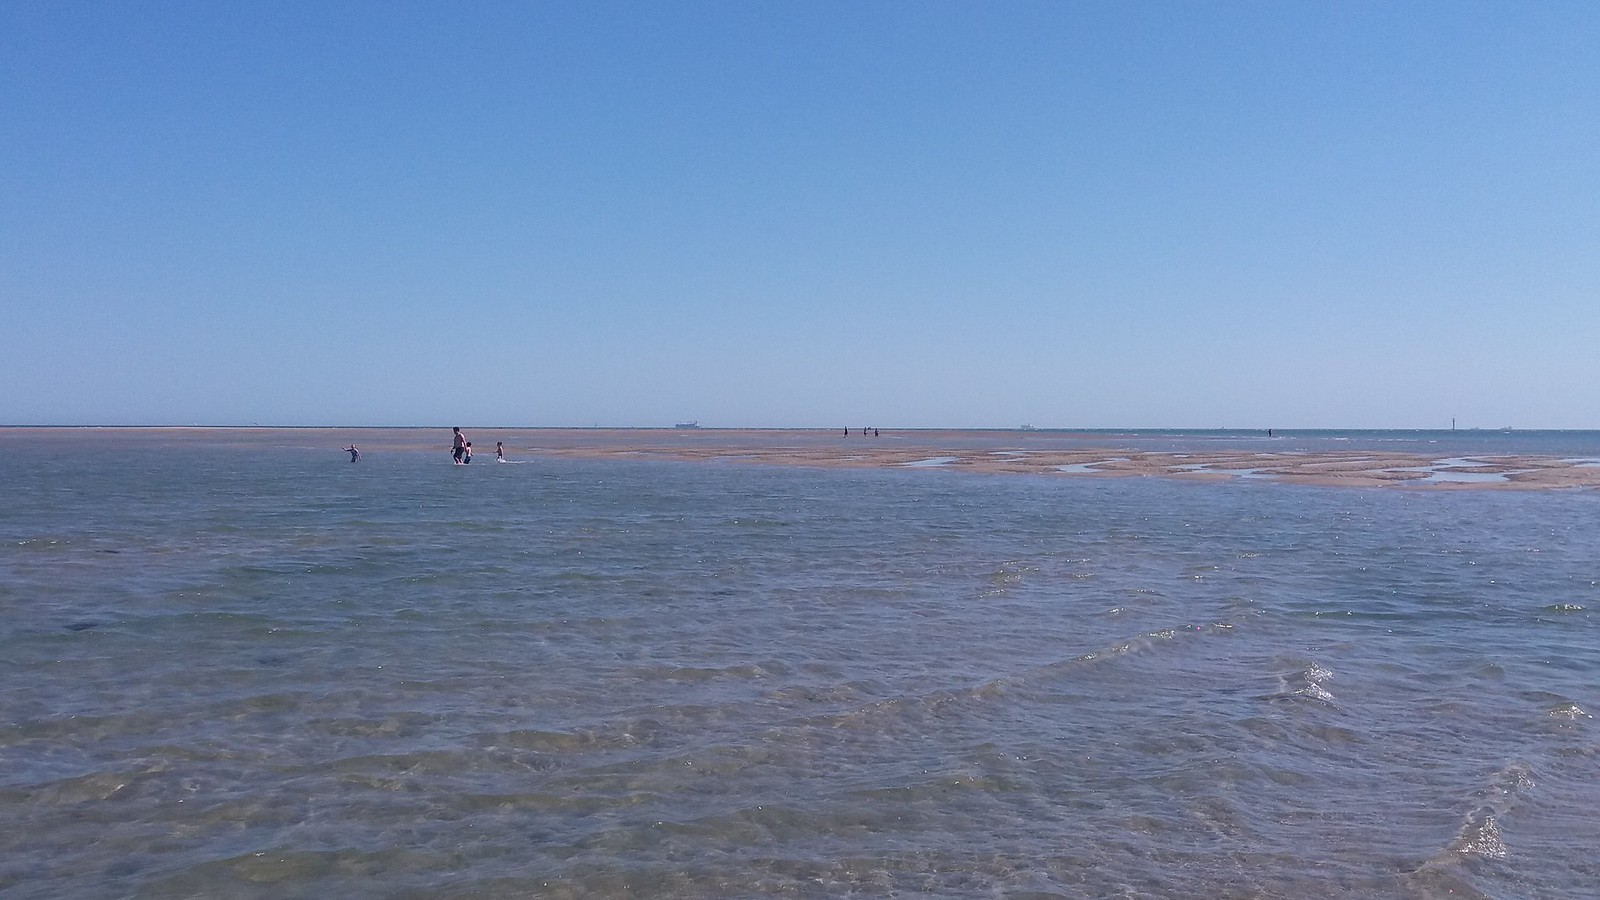 20160719_154639 East Winner sandbar at Gunner point around mid tide (near Ferry Inn, Hayling Golf Club)